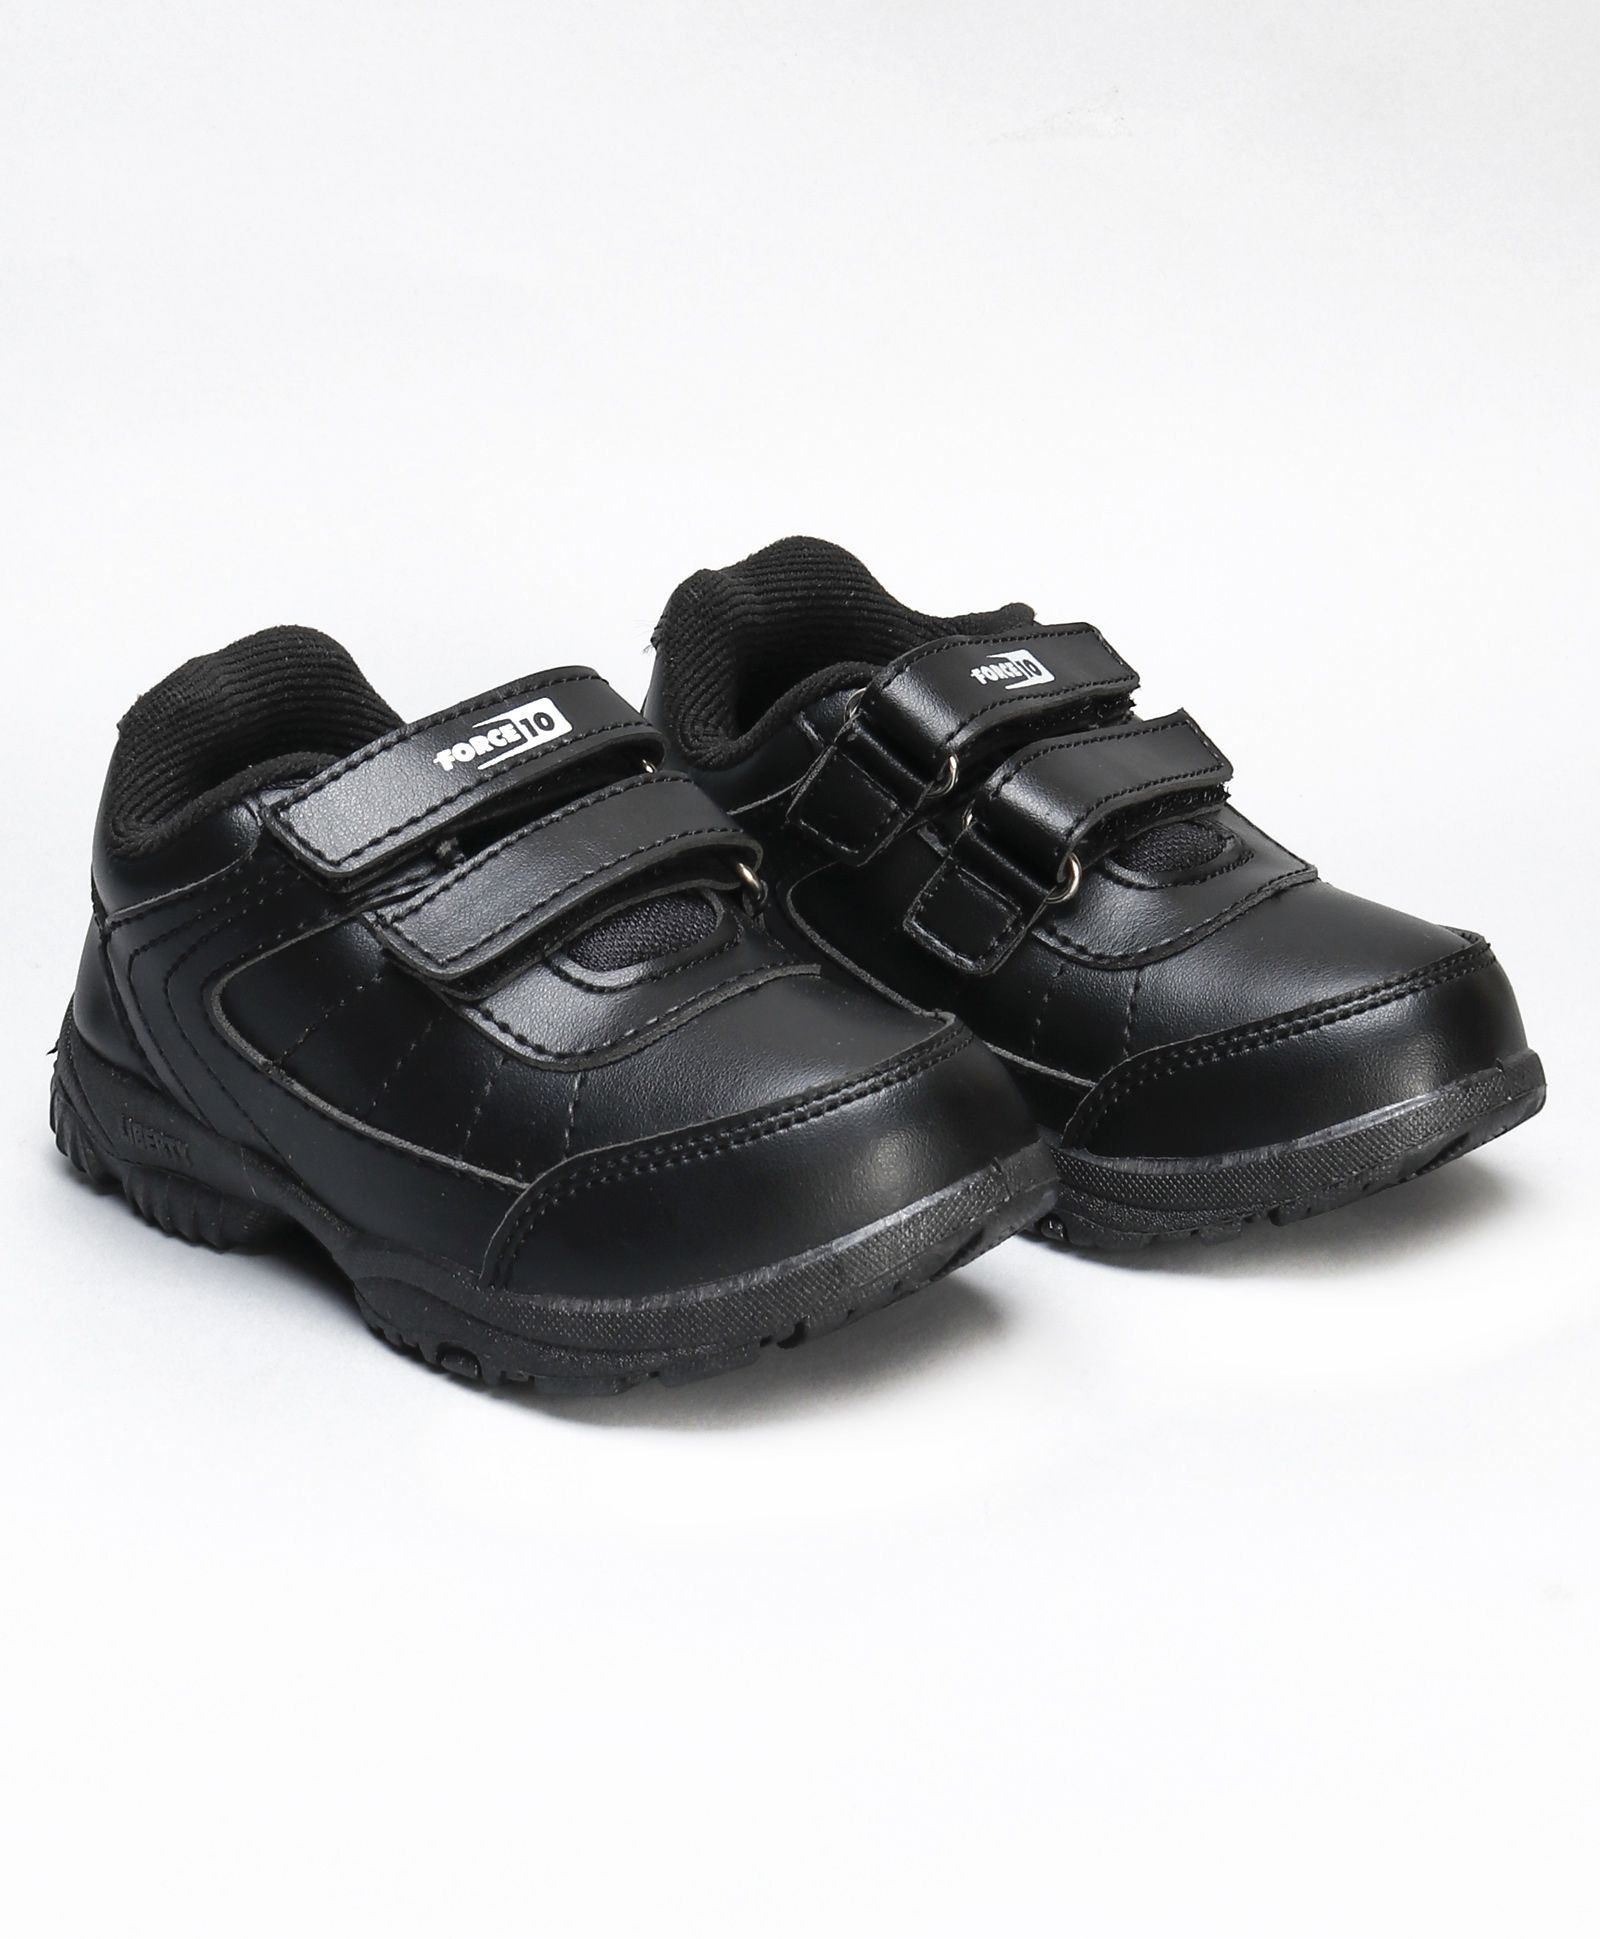 Force 10 School Shoes With Dual Velcro